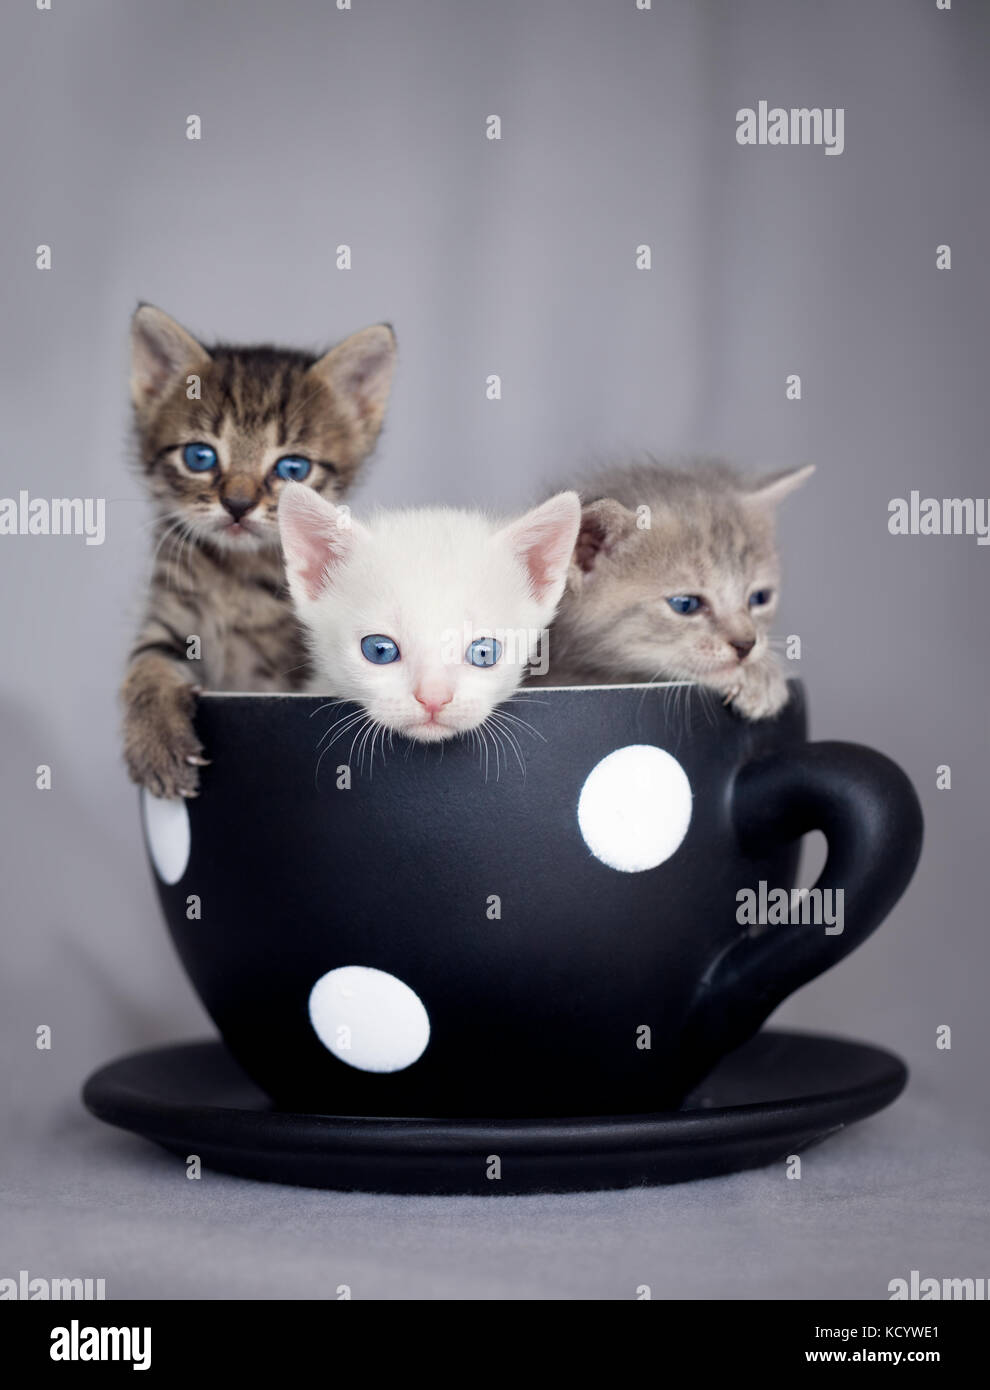 Three cute kittens sitting in large cup - Stock Image